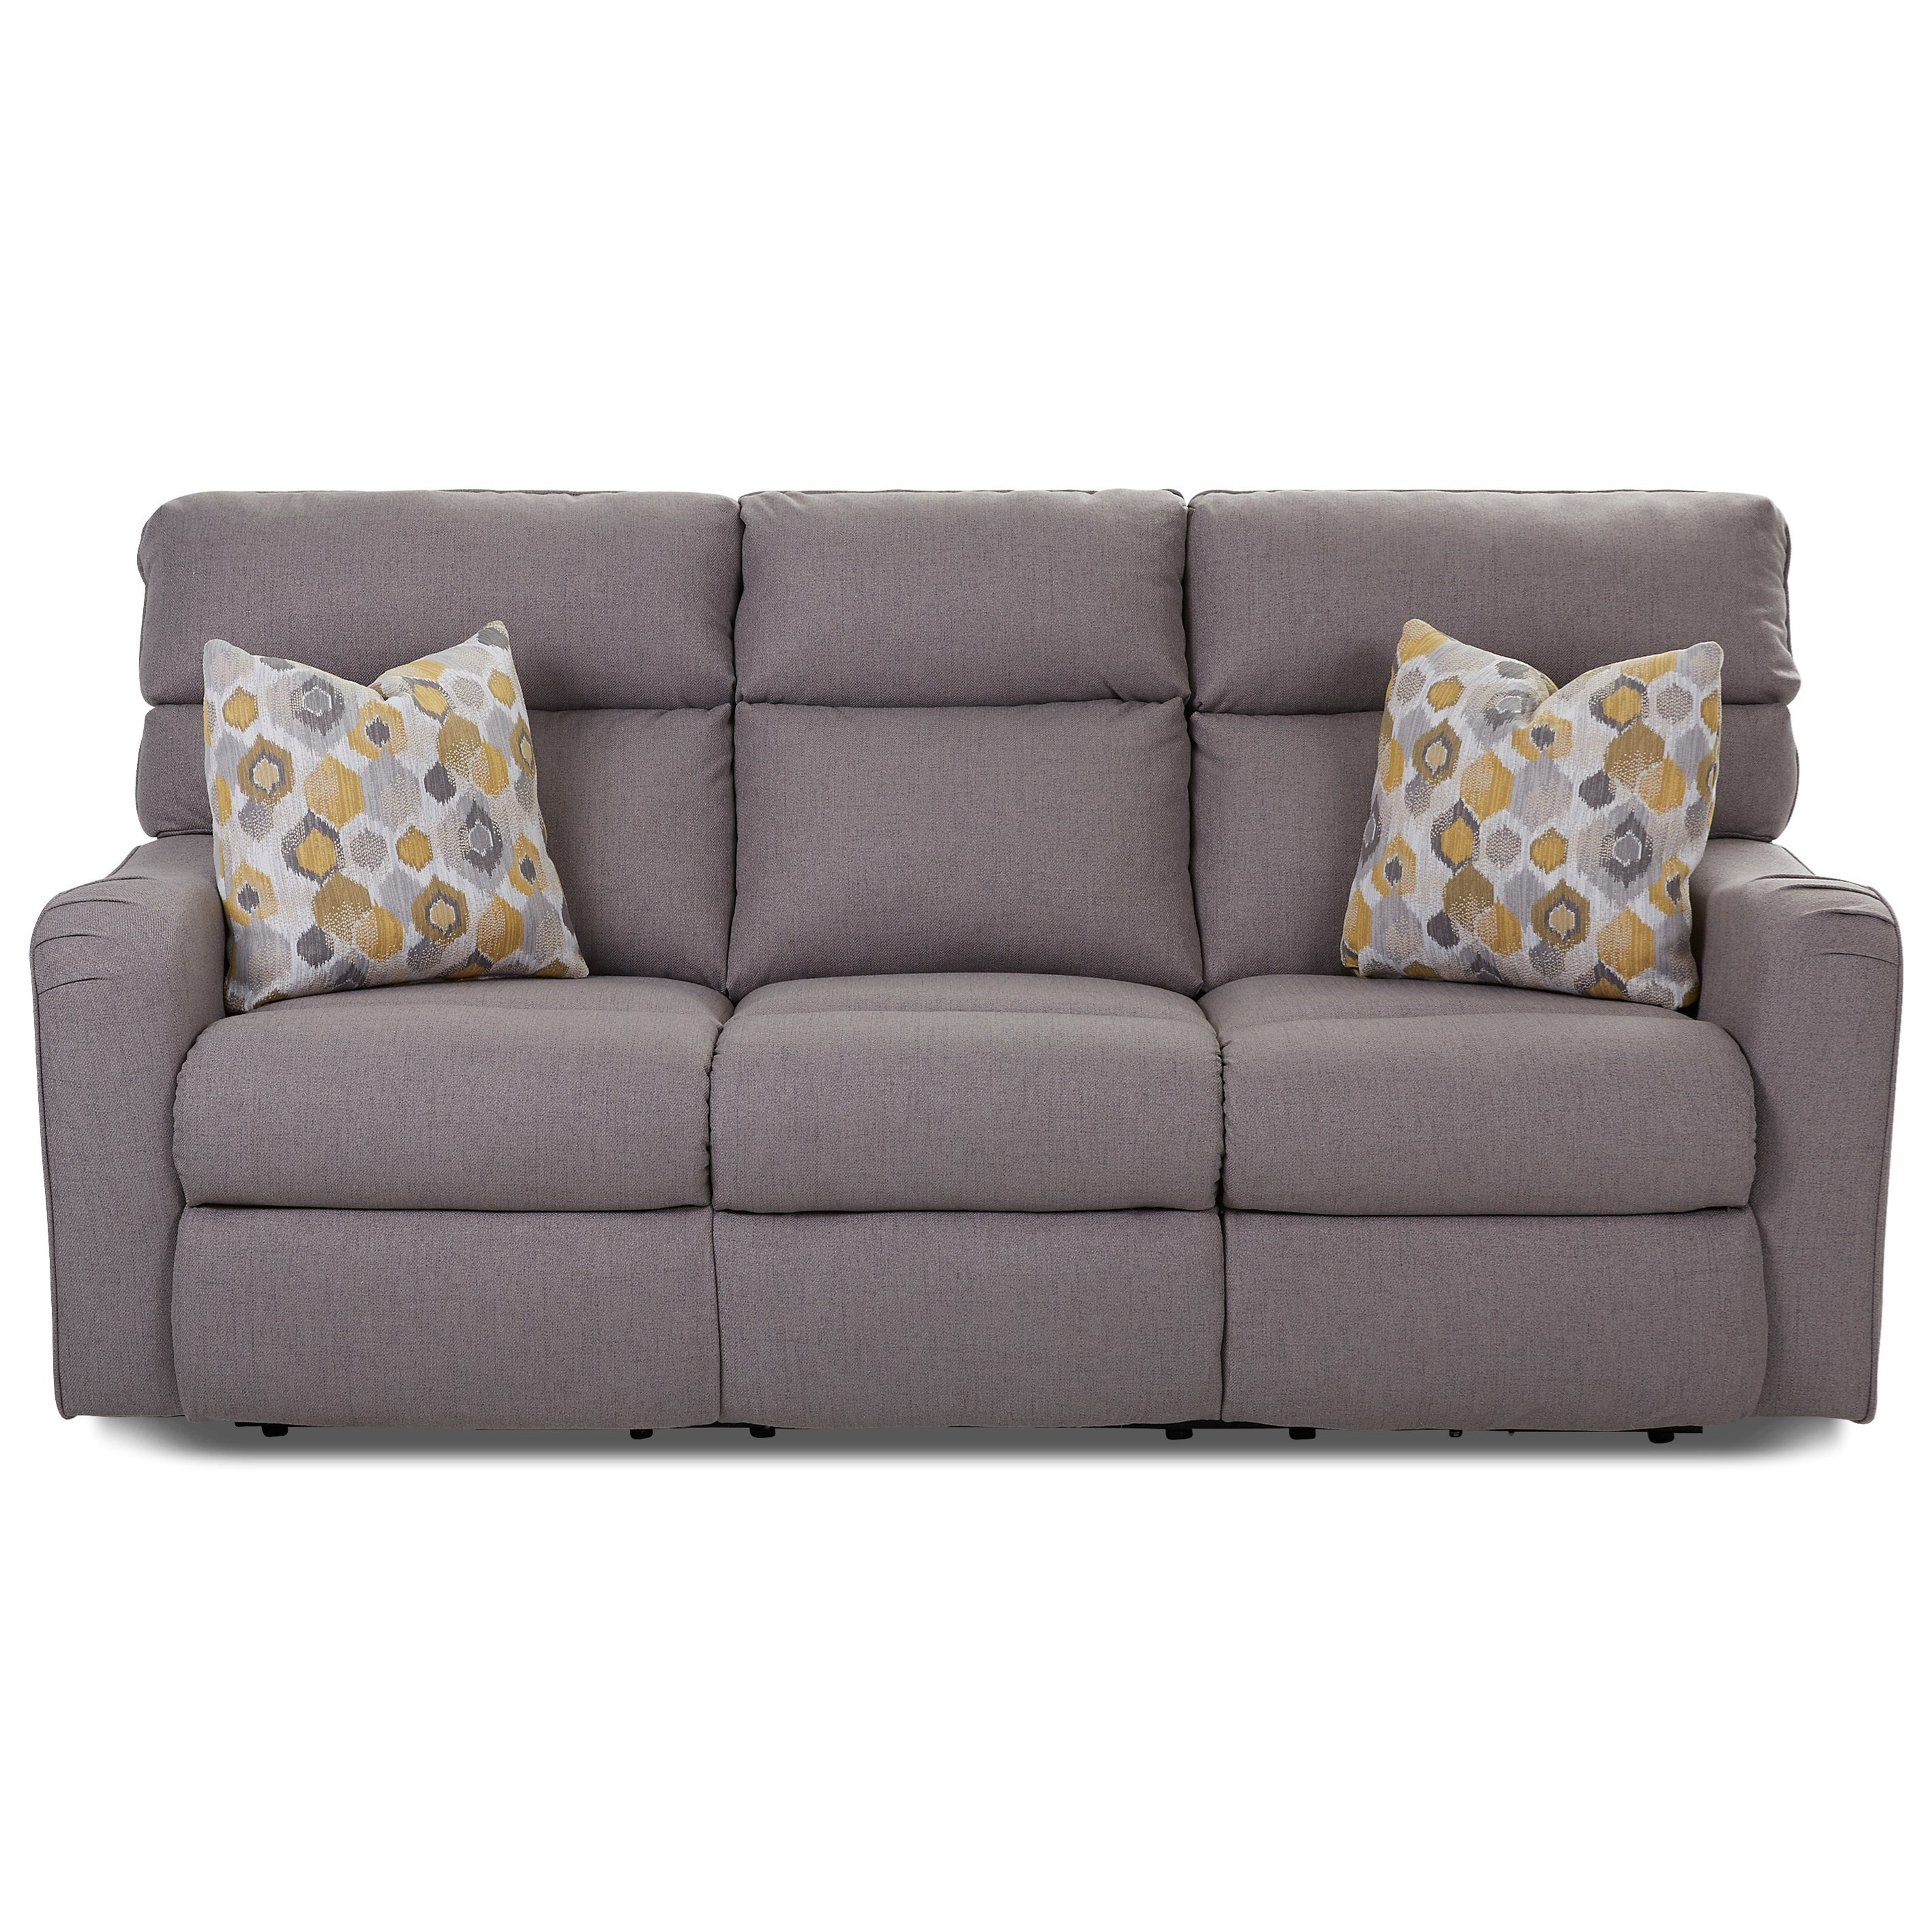 Klaussner Axis 25803 Power Reclining Sofa With Throw Pillows Wayside Furniture Reclining Sofas